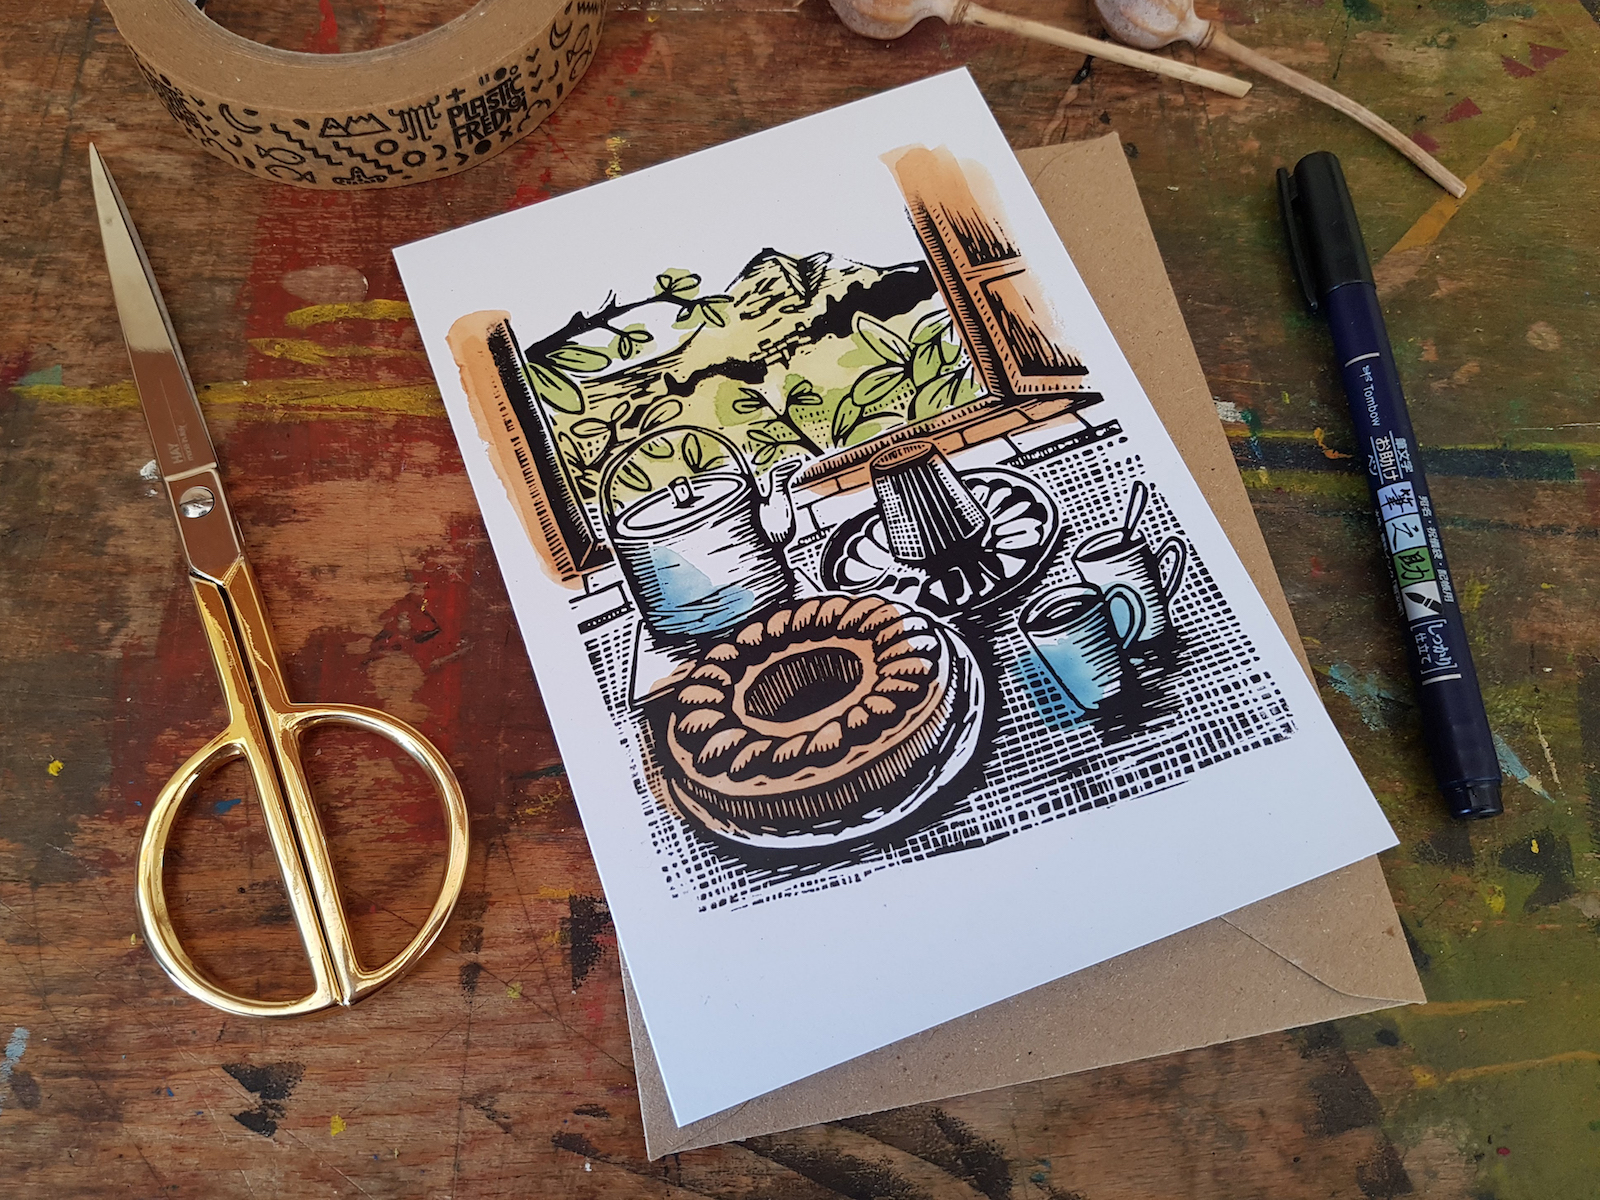 This is the image of a recycled card 'Ciambella' reproduction of an original lino print by Becca Thorne